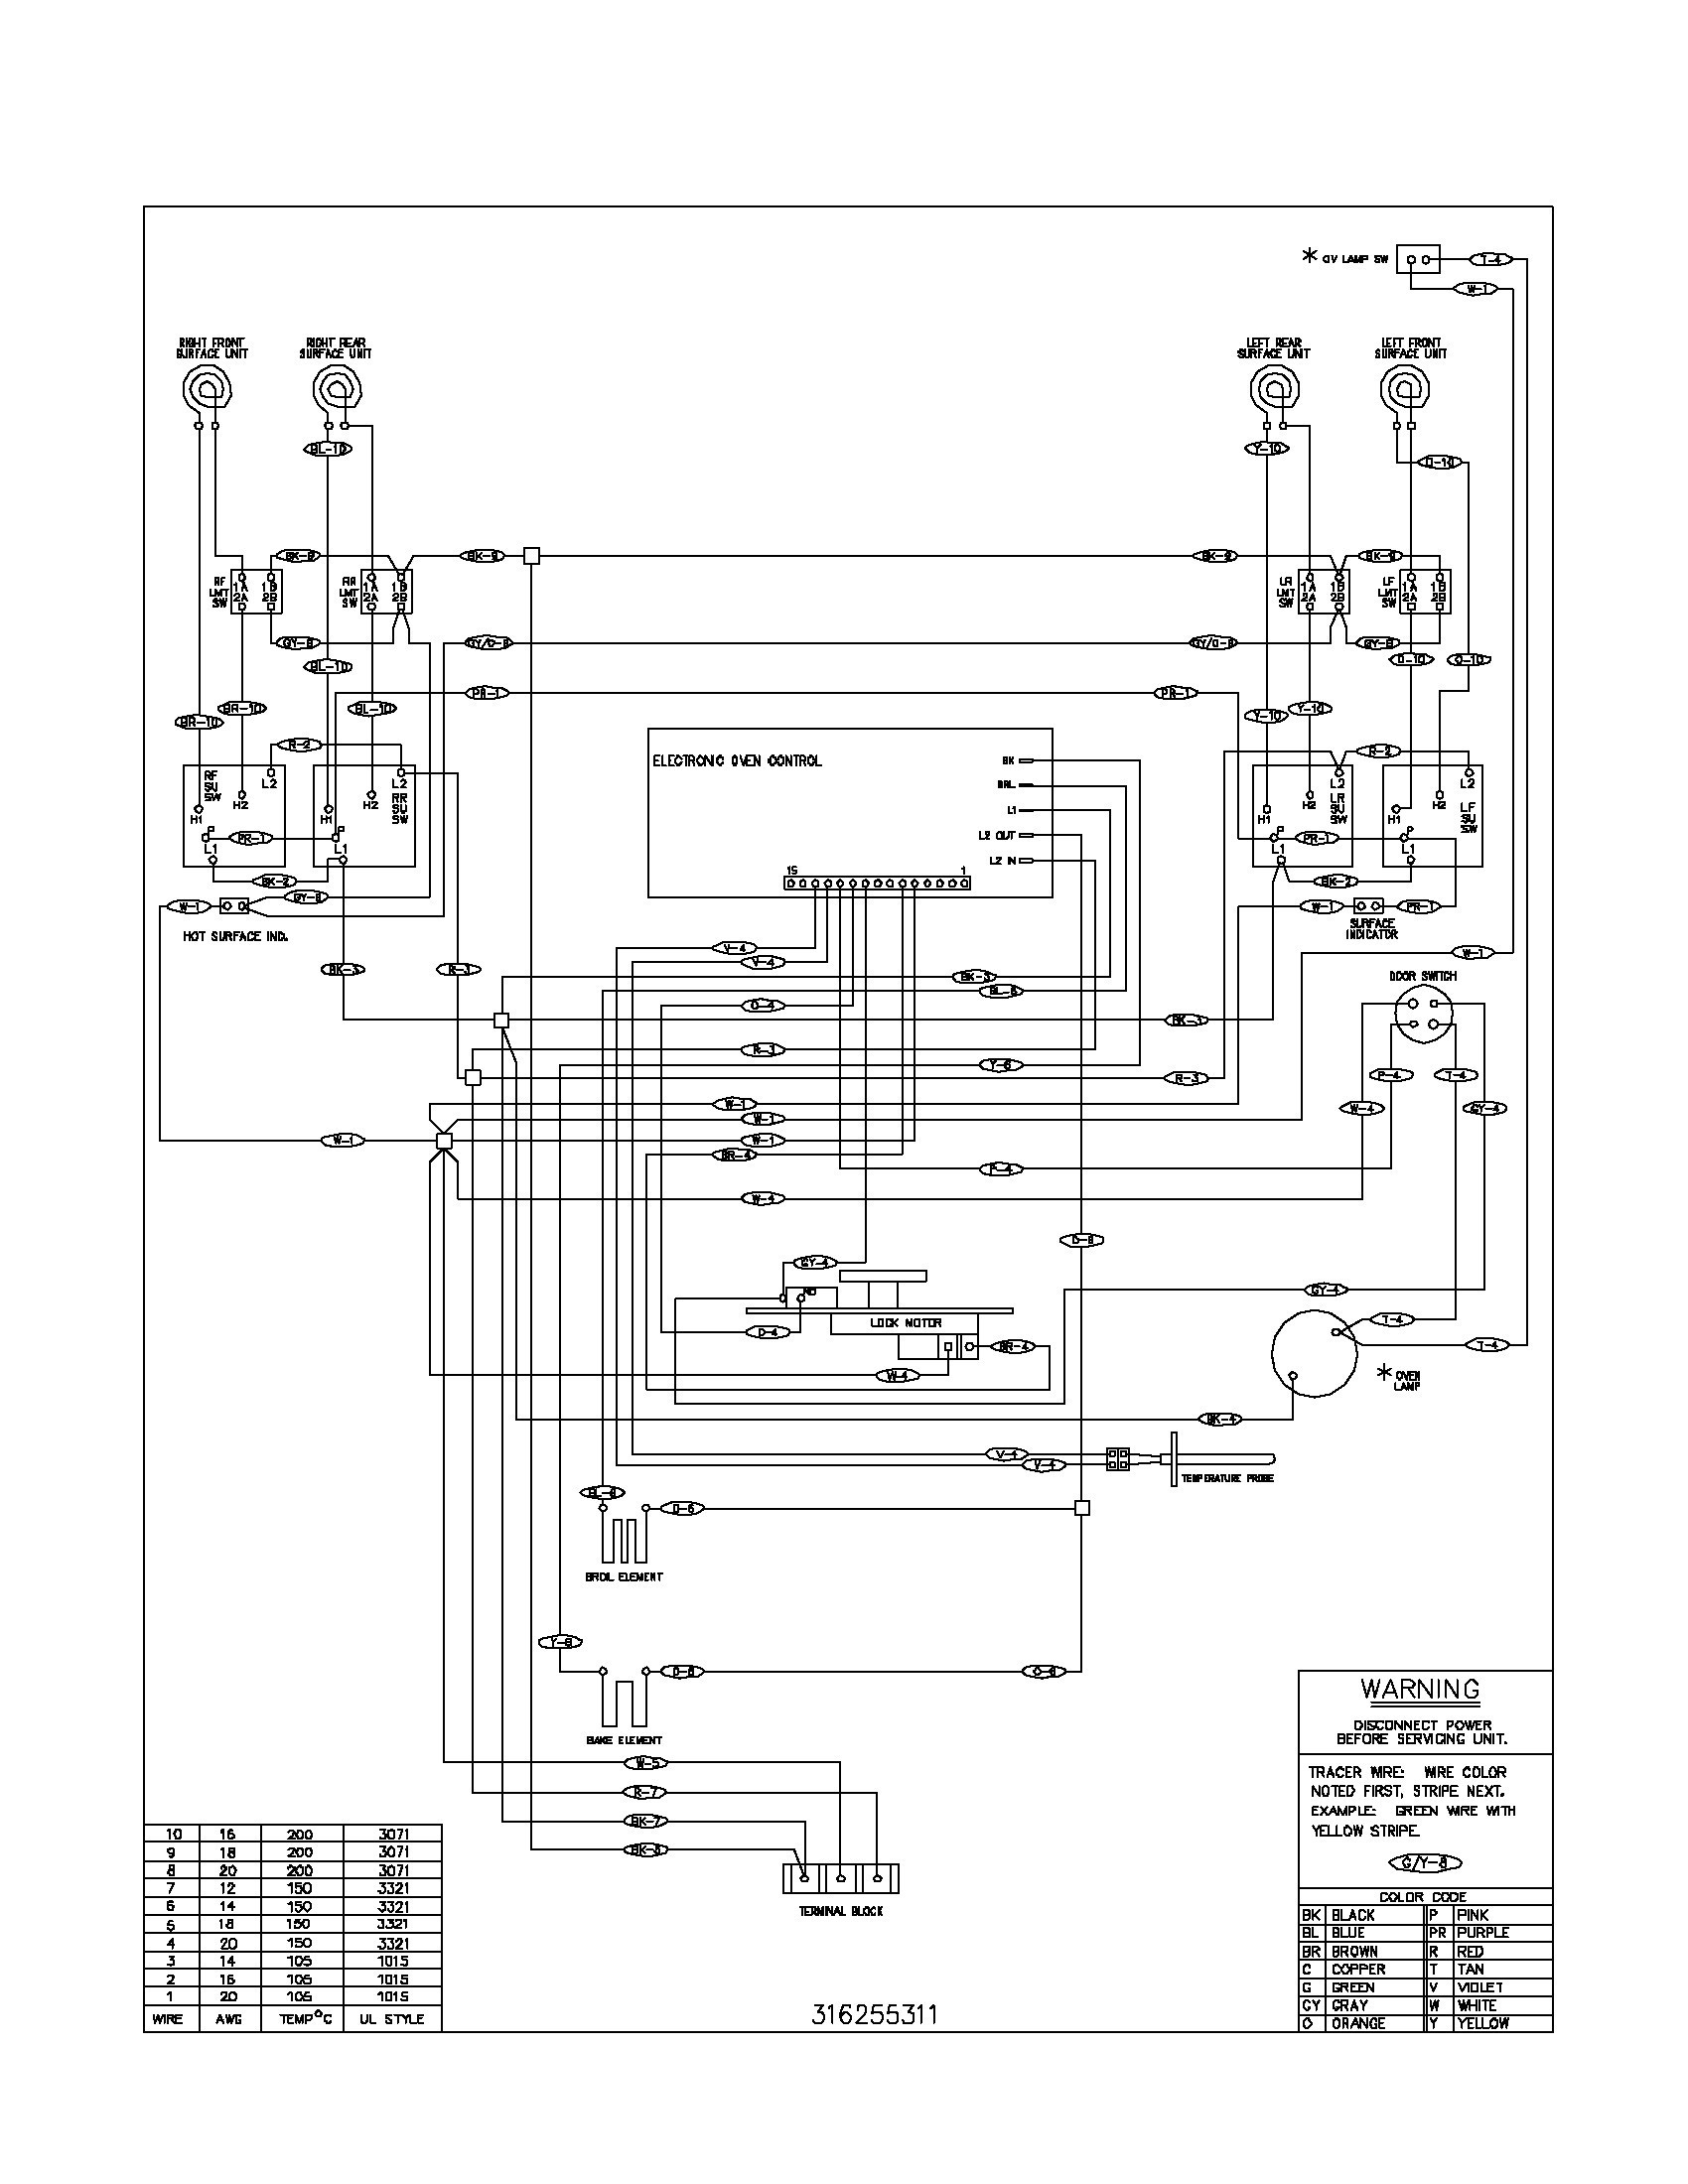 Intertherm Electric Furnace Wiring Diagram Inspirational Basic Electric Furnace Wiring Diagram New Delighted Basic Oven